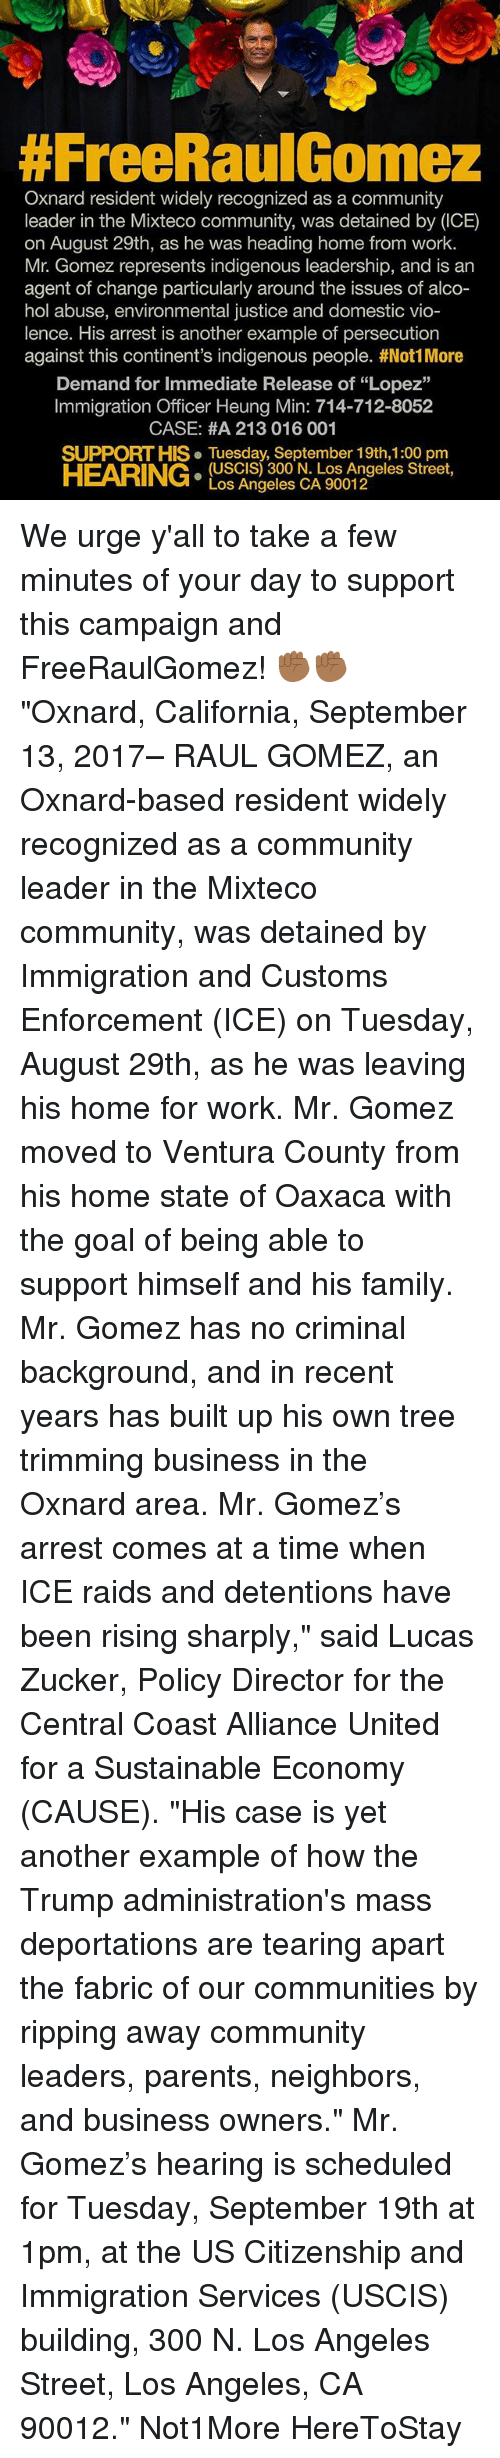 "Community, Family, and Memes:  #FreeRaulGomez  Oxnard resident widely recognized as a community  leader in the Mixteco community, was detained by (ICE)  on August 29th, as he was heading home from work.  Mr. Gomez represents indigenous leadership, and is an  agent of change particularly around the issues of alco-  hol abuse, environmental justice and domestic vio-  lence. His arrest is another example of persecution  against this continent's indigenous people. #Not! More  Demand for Immediate Release of ""Lopez""  Immigration Officer Heung Min: 714-712-8052  CASE: #A 213 016 001  SUPPORT HIS. Tuesday, September 19th,1:00 pm  HEARING:  (USCIS) 300 N. Los Angeles Street,  Los Angeles CA 90012 We urge y'all to take a few minutes of your day to support this campaign and FreeRaulGomez! ✊🏾✊🏾 ""Oxnard, California, September 13, 2017– RAUL GOMEZ, an Oxnard-based resident widely recognized as a community leader in the Mixteco community, was detained by Immigration and Customs Enforcement (ICE) on Tuesday, August 29th, as he was leaving his home for work. Mr. Gomez moved to Ventura County from his home state of Oaxaca with the goal of being able to support himself and his family. Mr. Gomez has no criminal background, and in recent years has built up his own tree trimming business in the Oxnard area. Mr. Gomez's arrest comes at a time when ICE raids and detentions have been rising sharply,"" said Lucas Zucker, Policy Director for the Central Coast Alliance United for a Sustainable Economy (CAUSE). ""His case is yet another example of how the Trump administration's mass deportations are tearing apart the fabric of our communities by ripping away community leaders, parents, neighbors, and business owners."" Mr. Gomez's hearing is scheduled for Tuesday, September 19th at 1pm, at the US Citizenship and Immigration Services (USCIS) building, 300 N. Los Angeles Street, Los Angeles, CA 90012."" Not1More HereToStay"